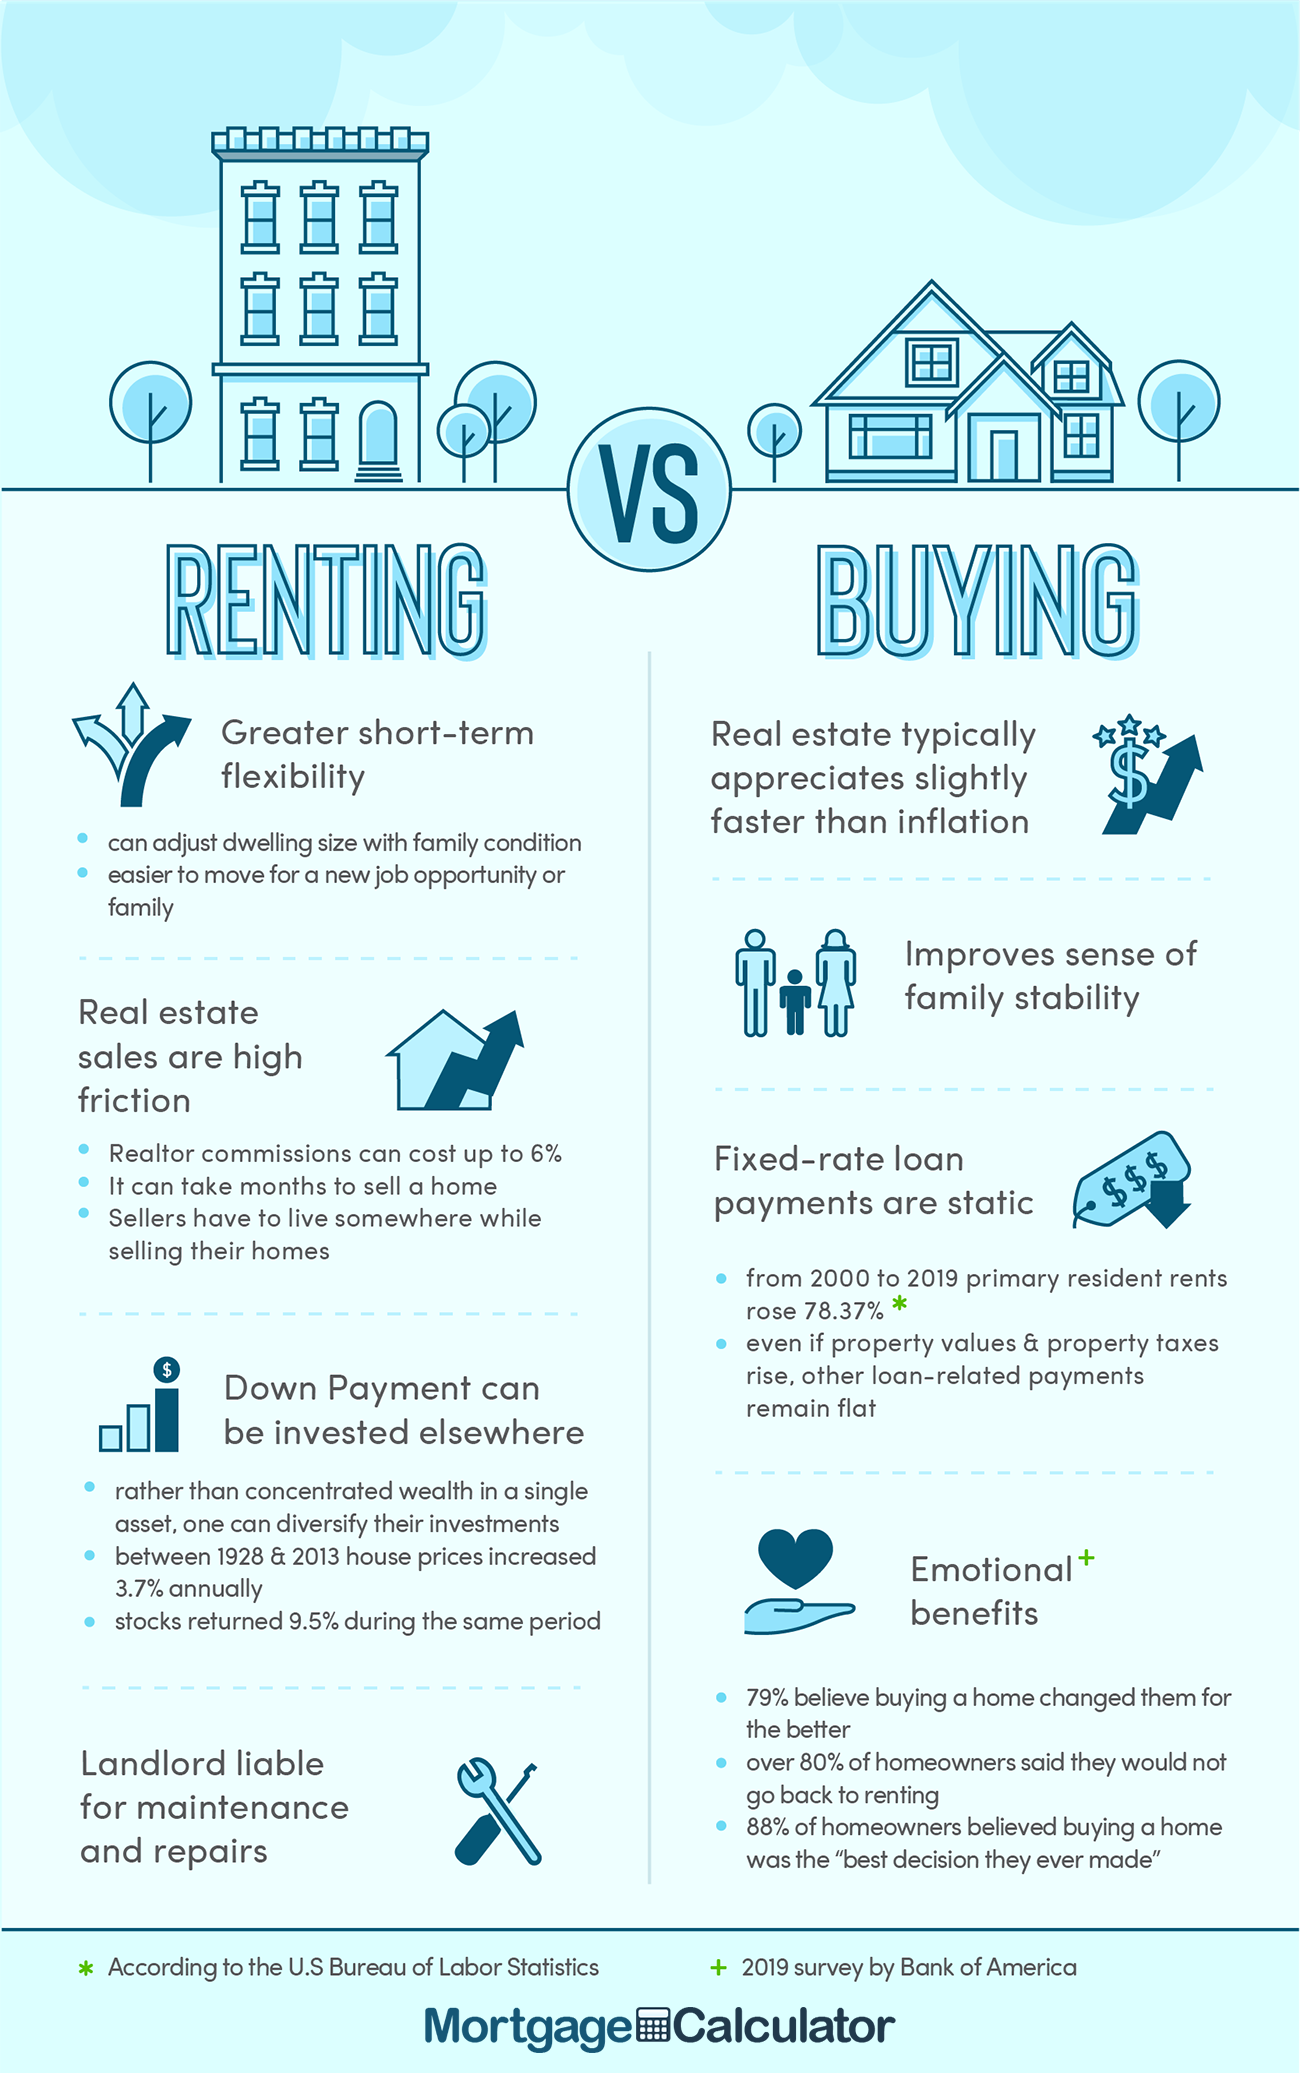 Renting vs Buying a Home.